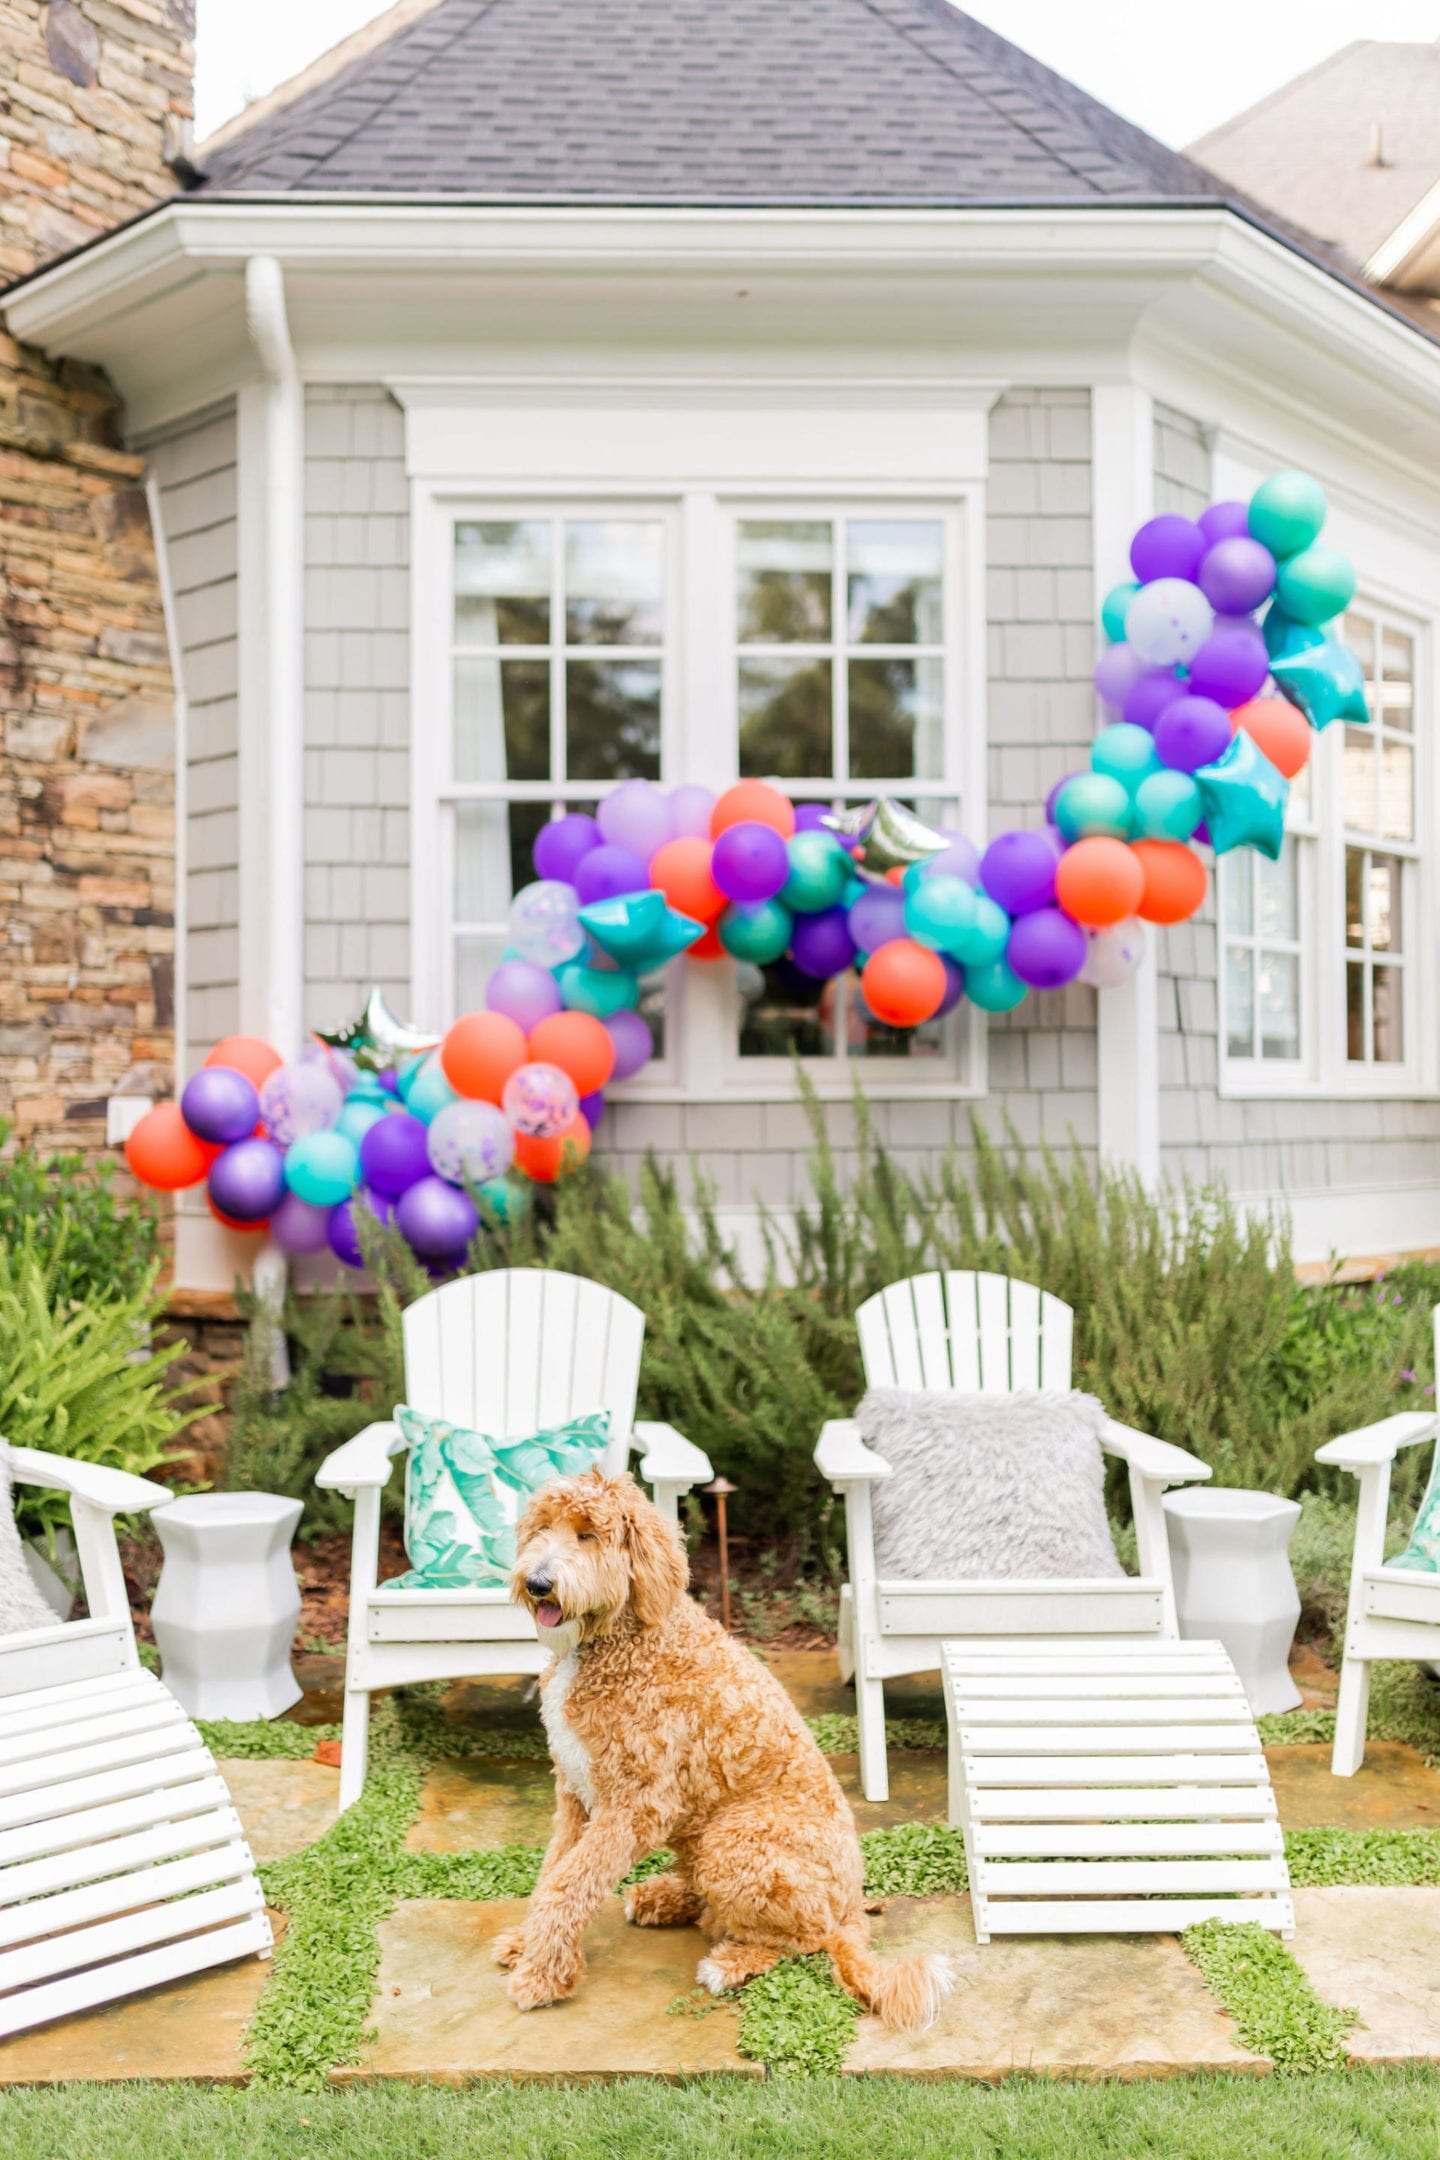 We threw a COVID surprise party for our daughter. To make it special we had awesome party balloon decorations! Sharing some fun balloon decoration ideas! I've linked everything used here for the balloon garland kit and a DIY balloon garland fun-filled party!